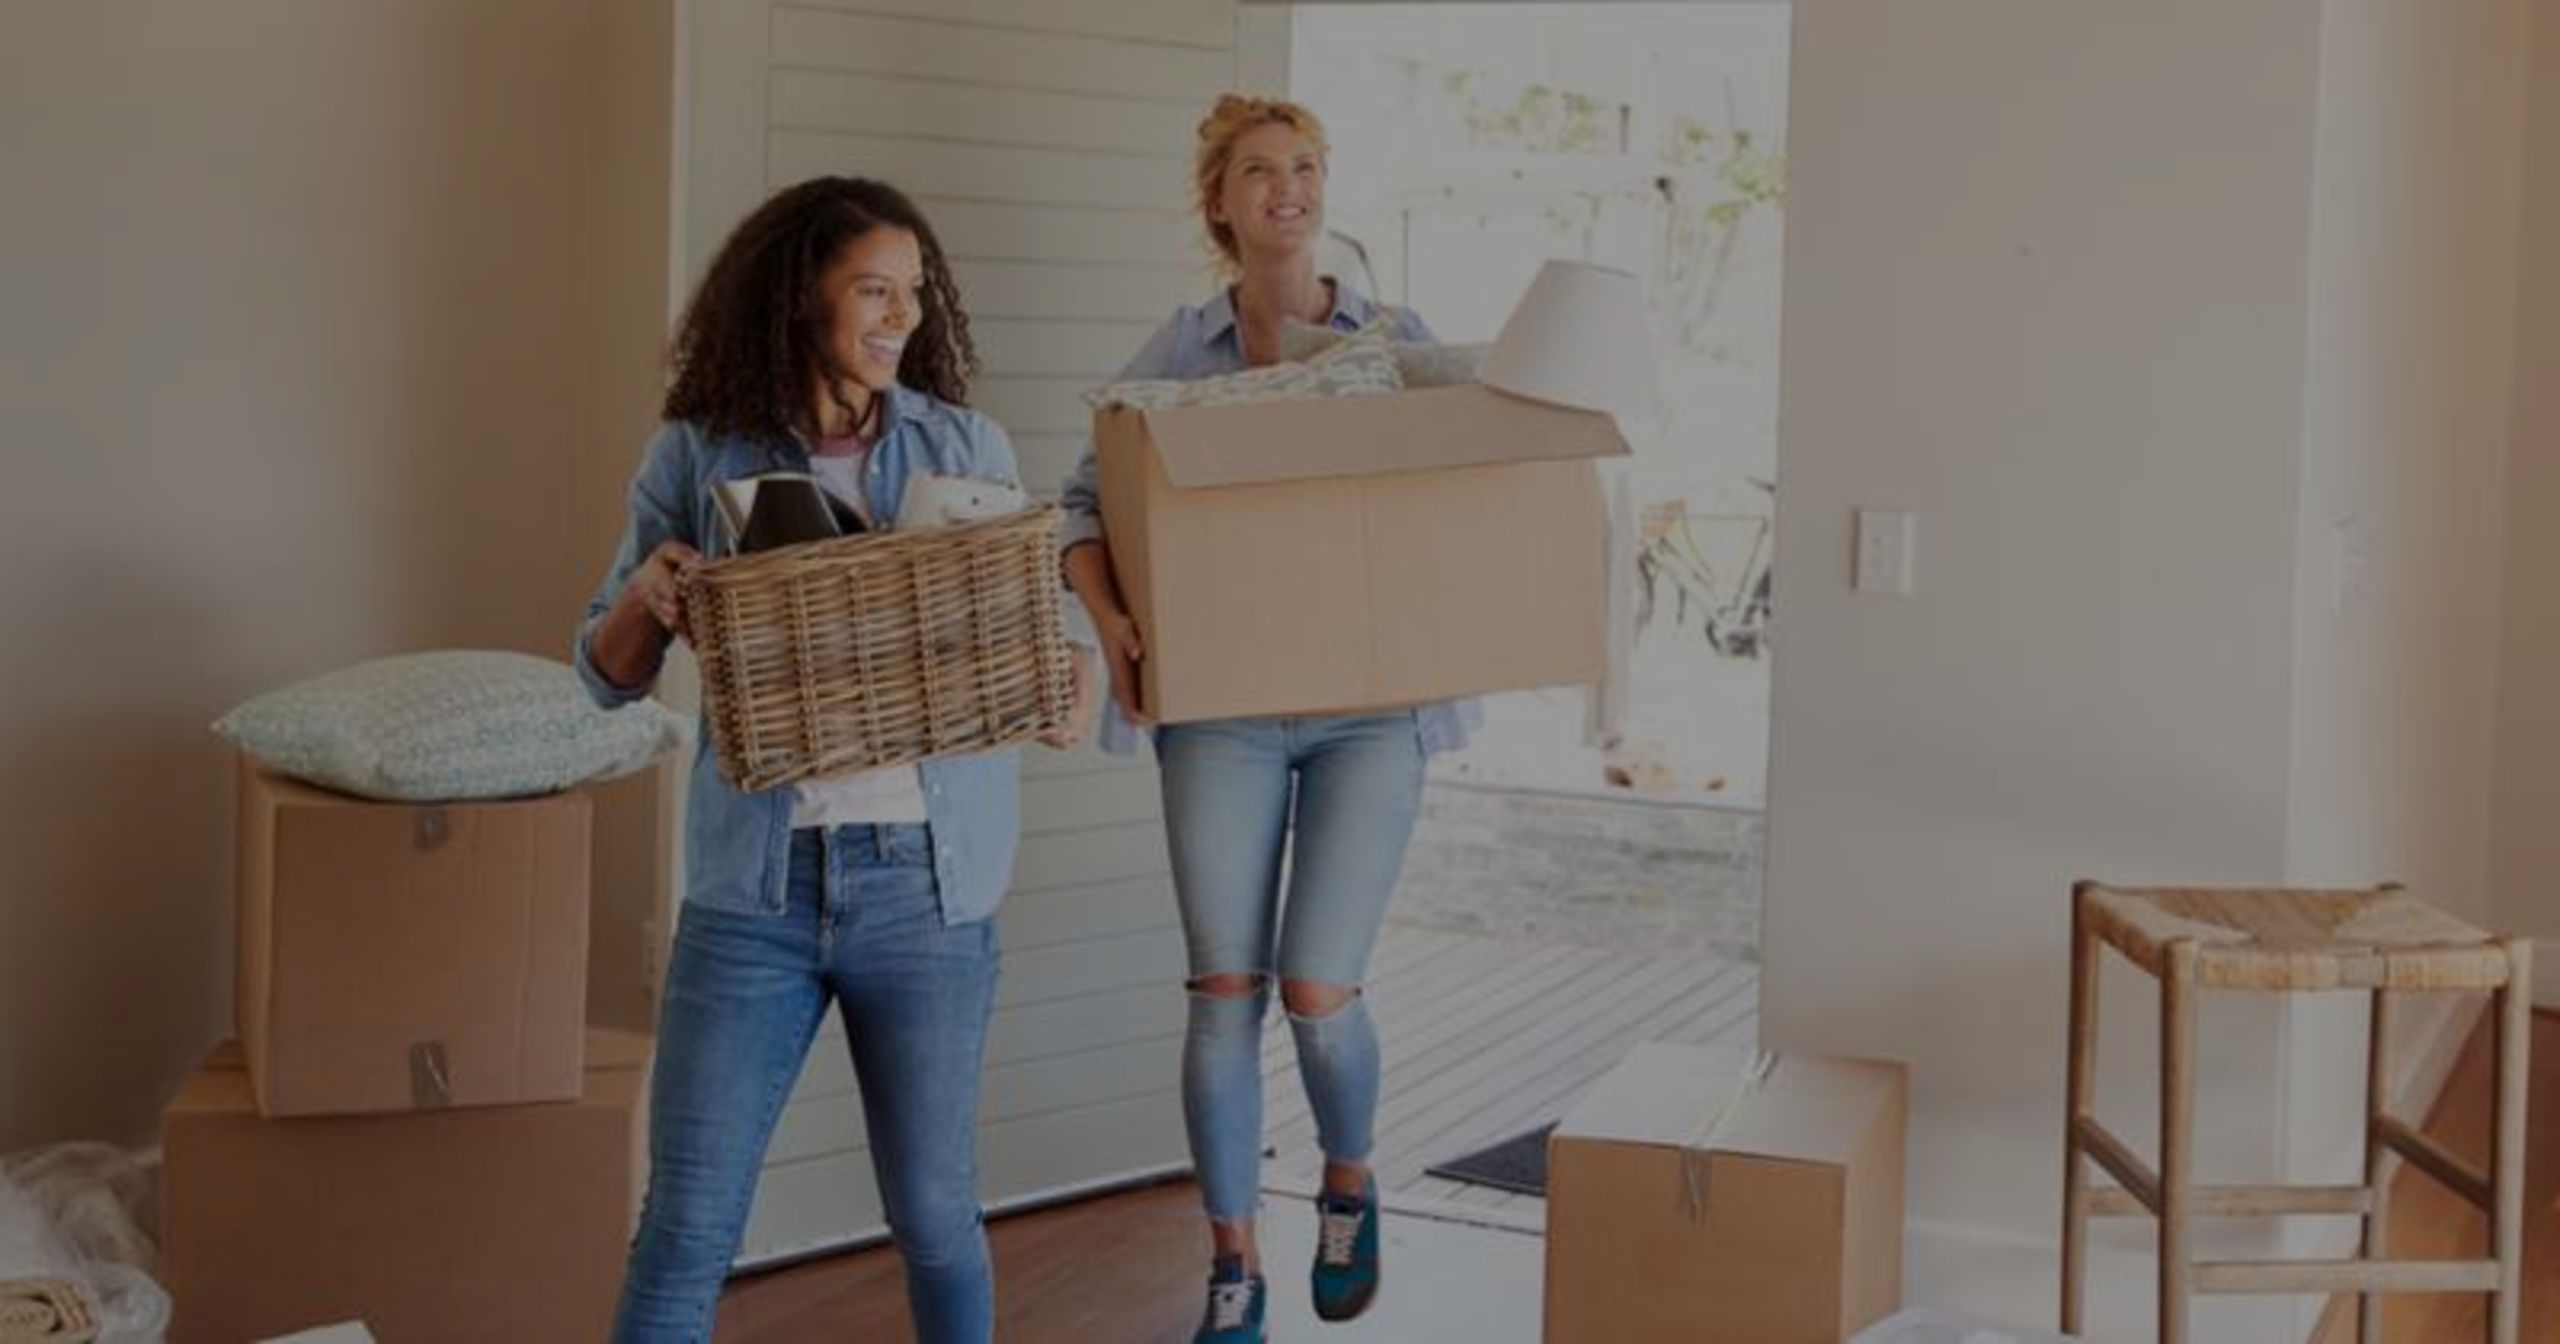 HOMEBUYING: WHAT TO CONSIDER WHEN BUYING A HOME WITH FRIENDS OR FAMILY